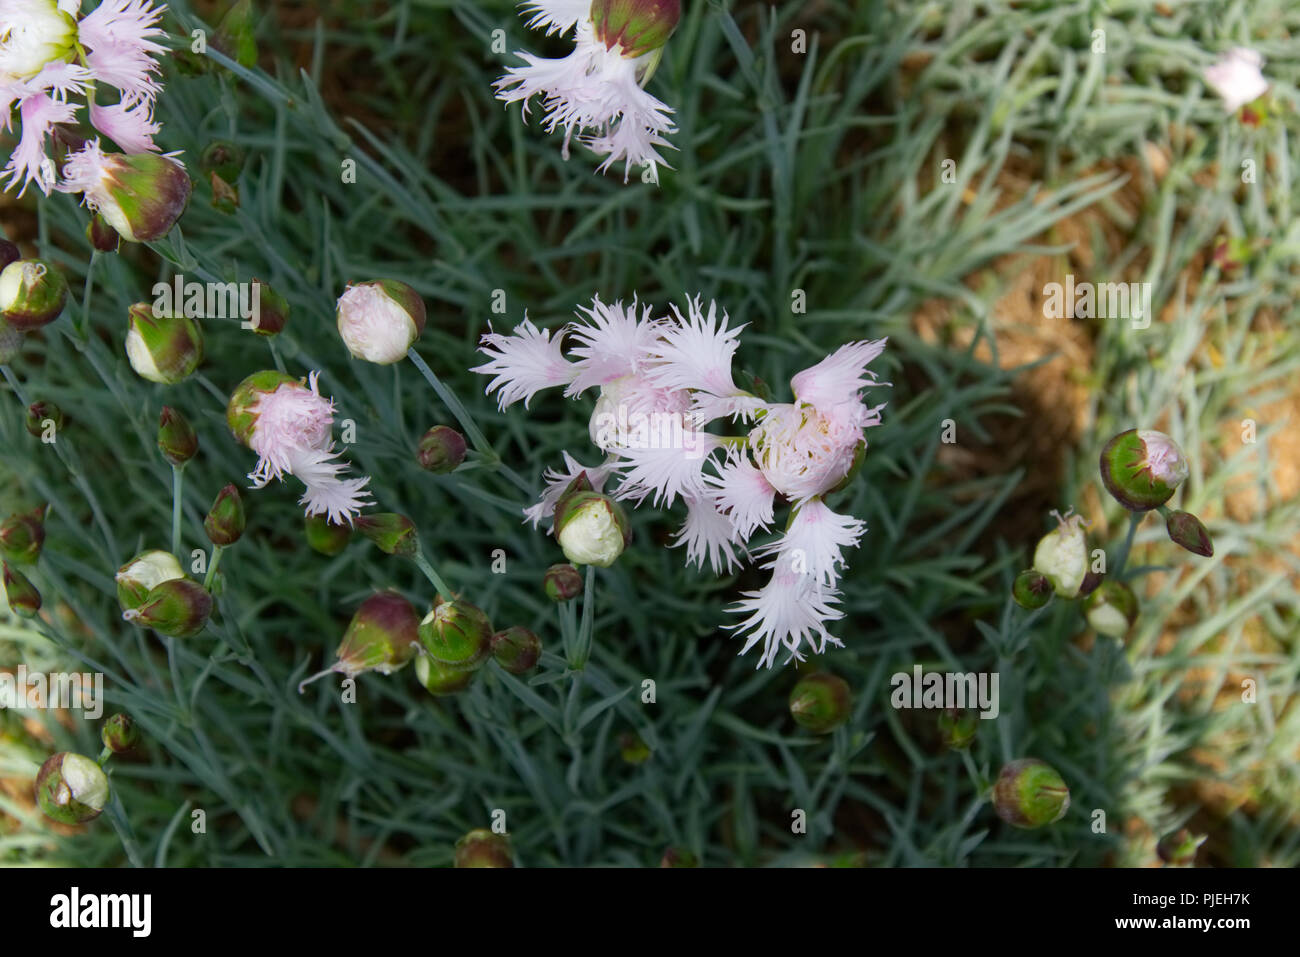 Petite white blossoms of a flower in the garden - Stock Image